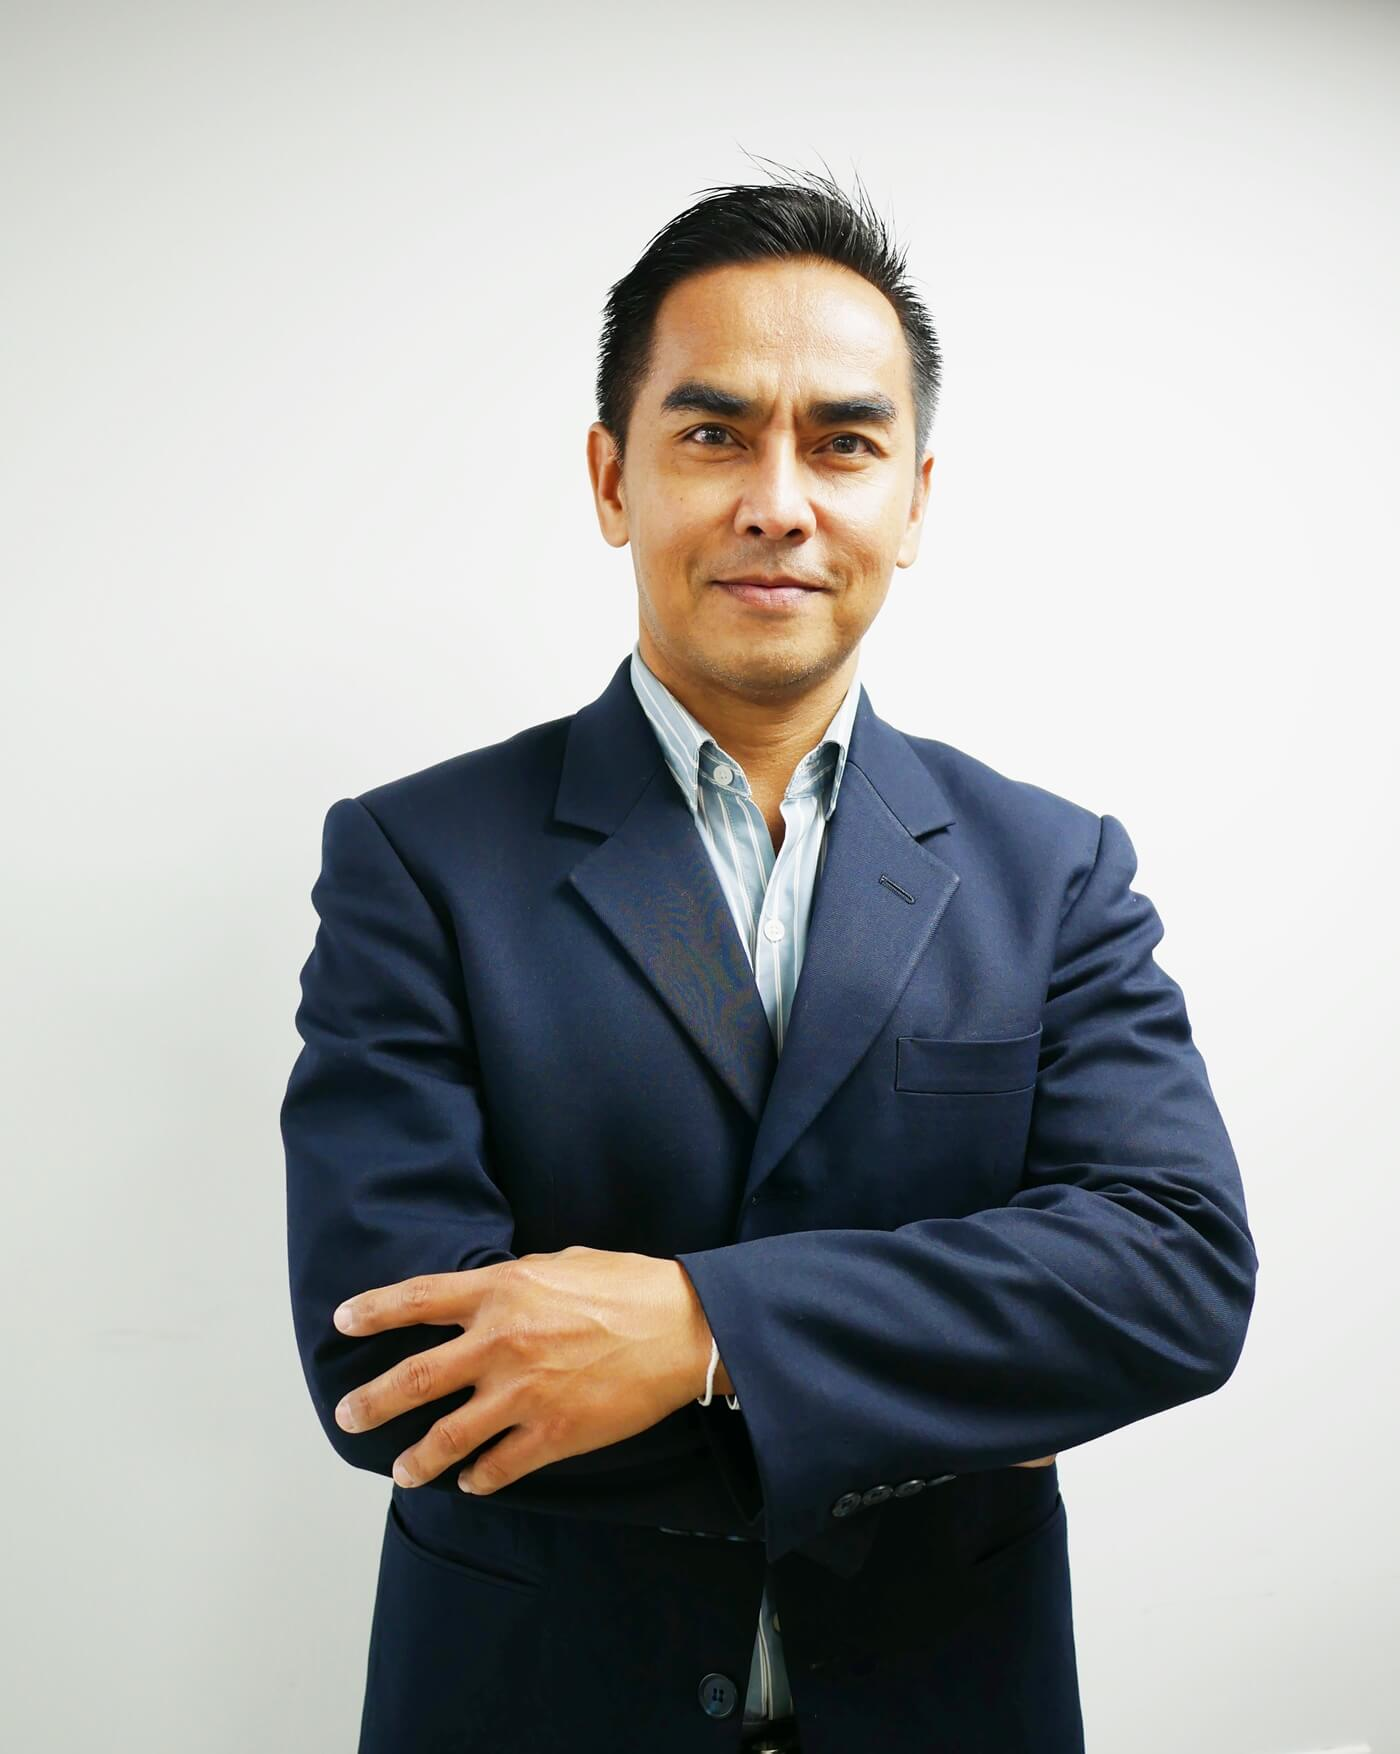 Travelodge Pattaya appoints new General Manager